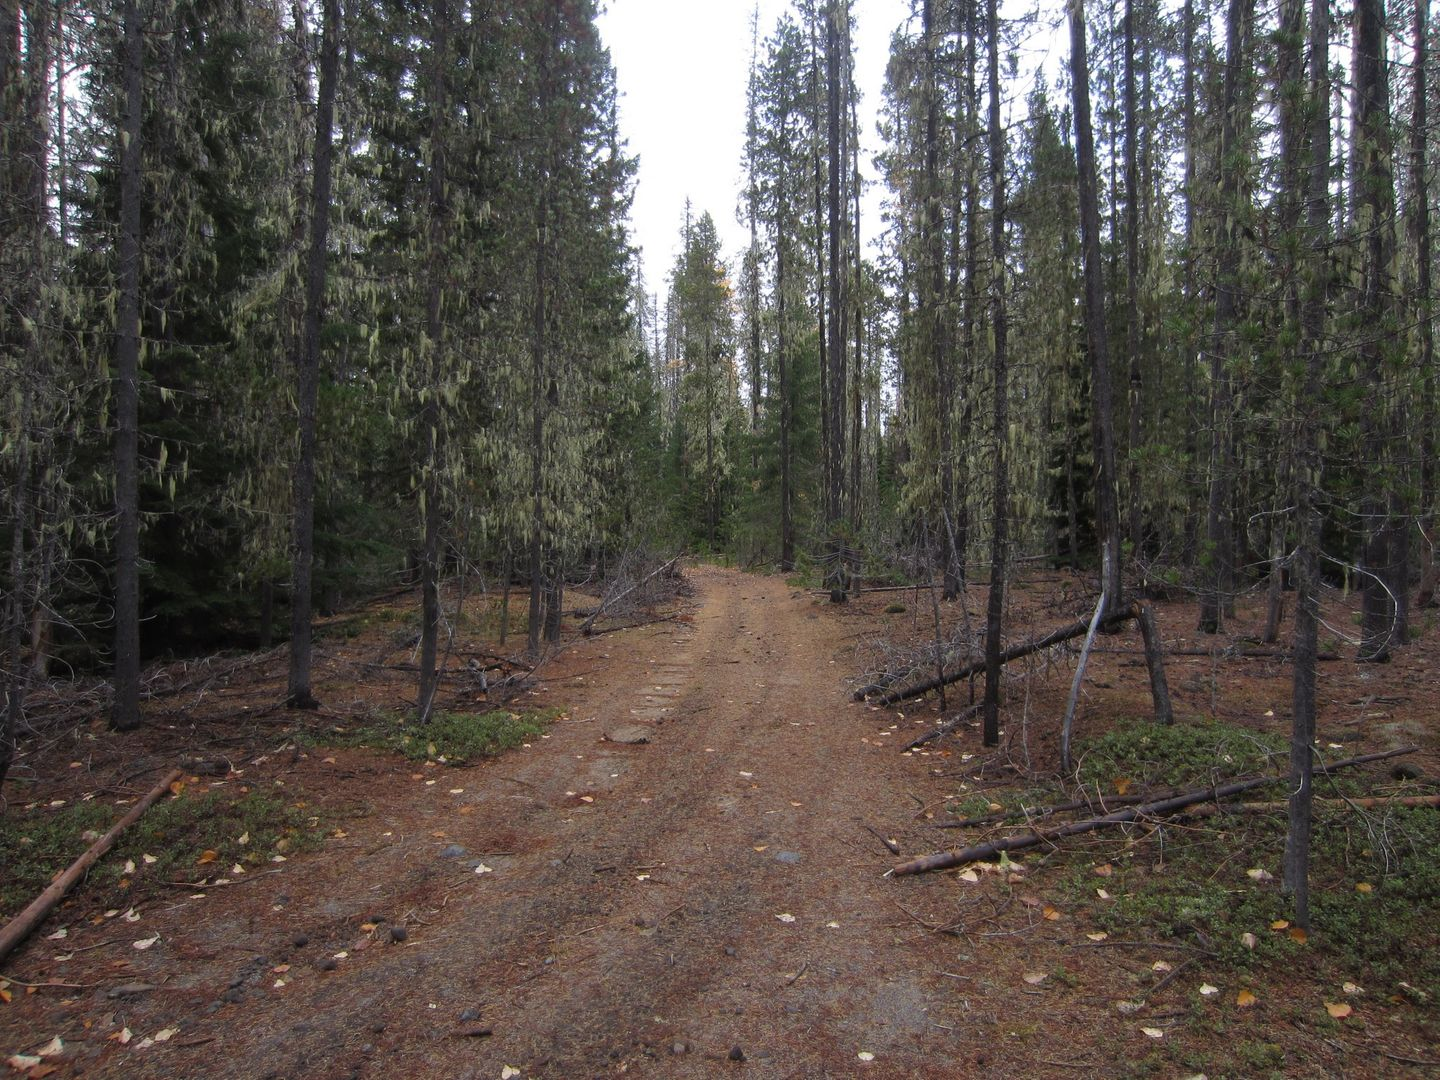 Barlow Trail - Waypoint 34: Continue Straight